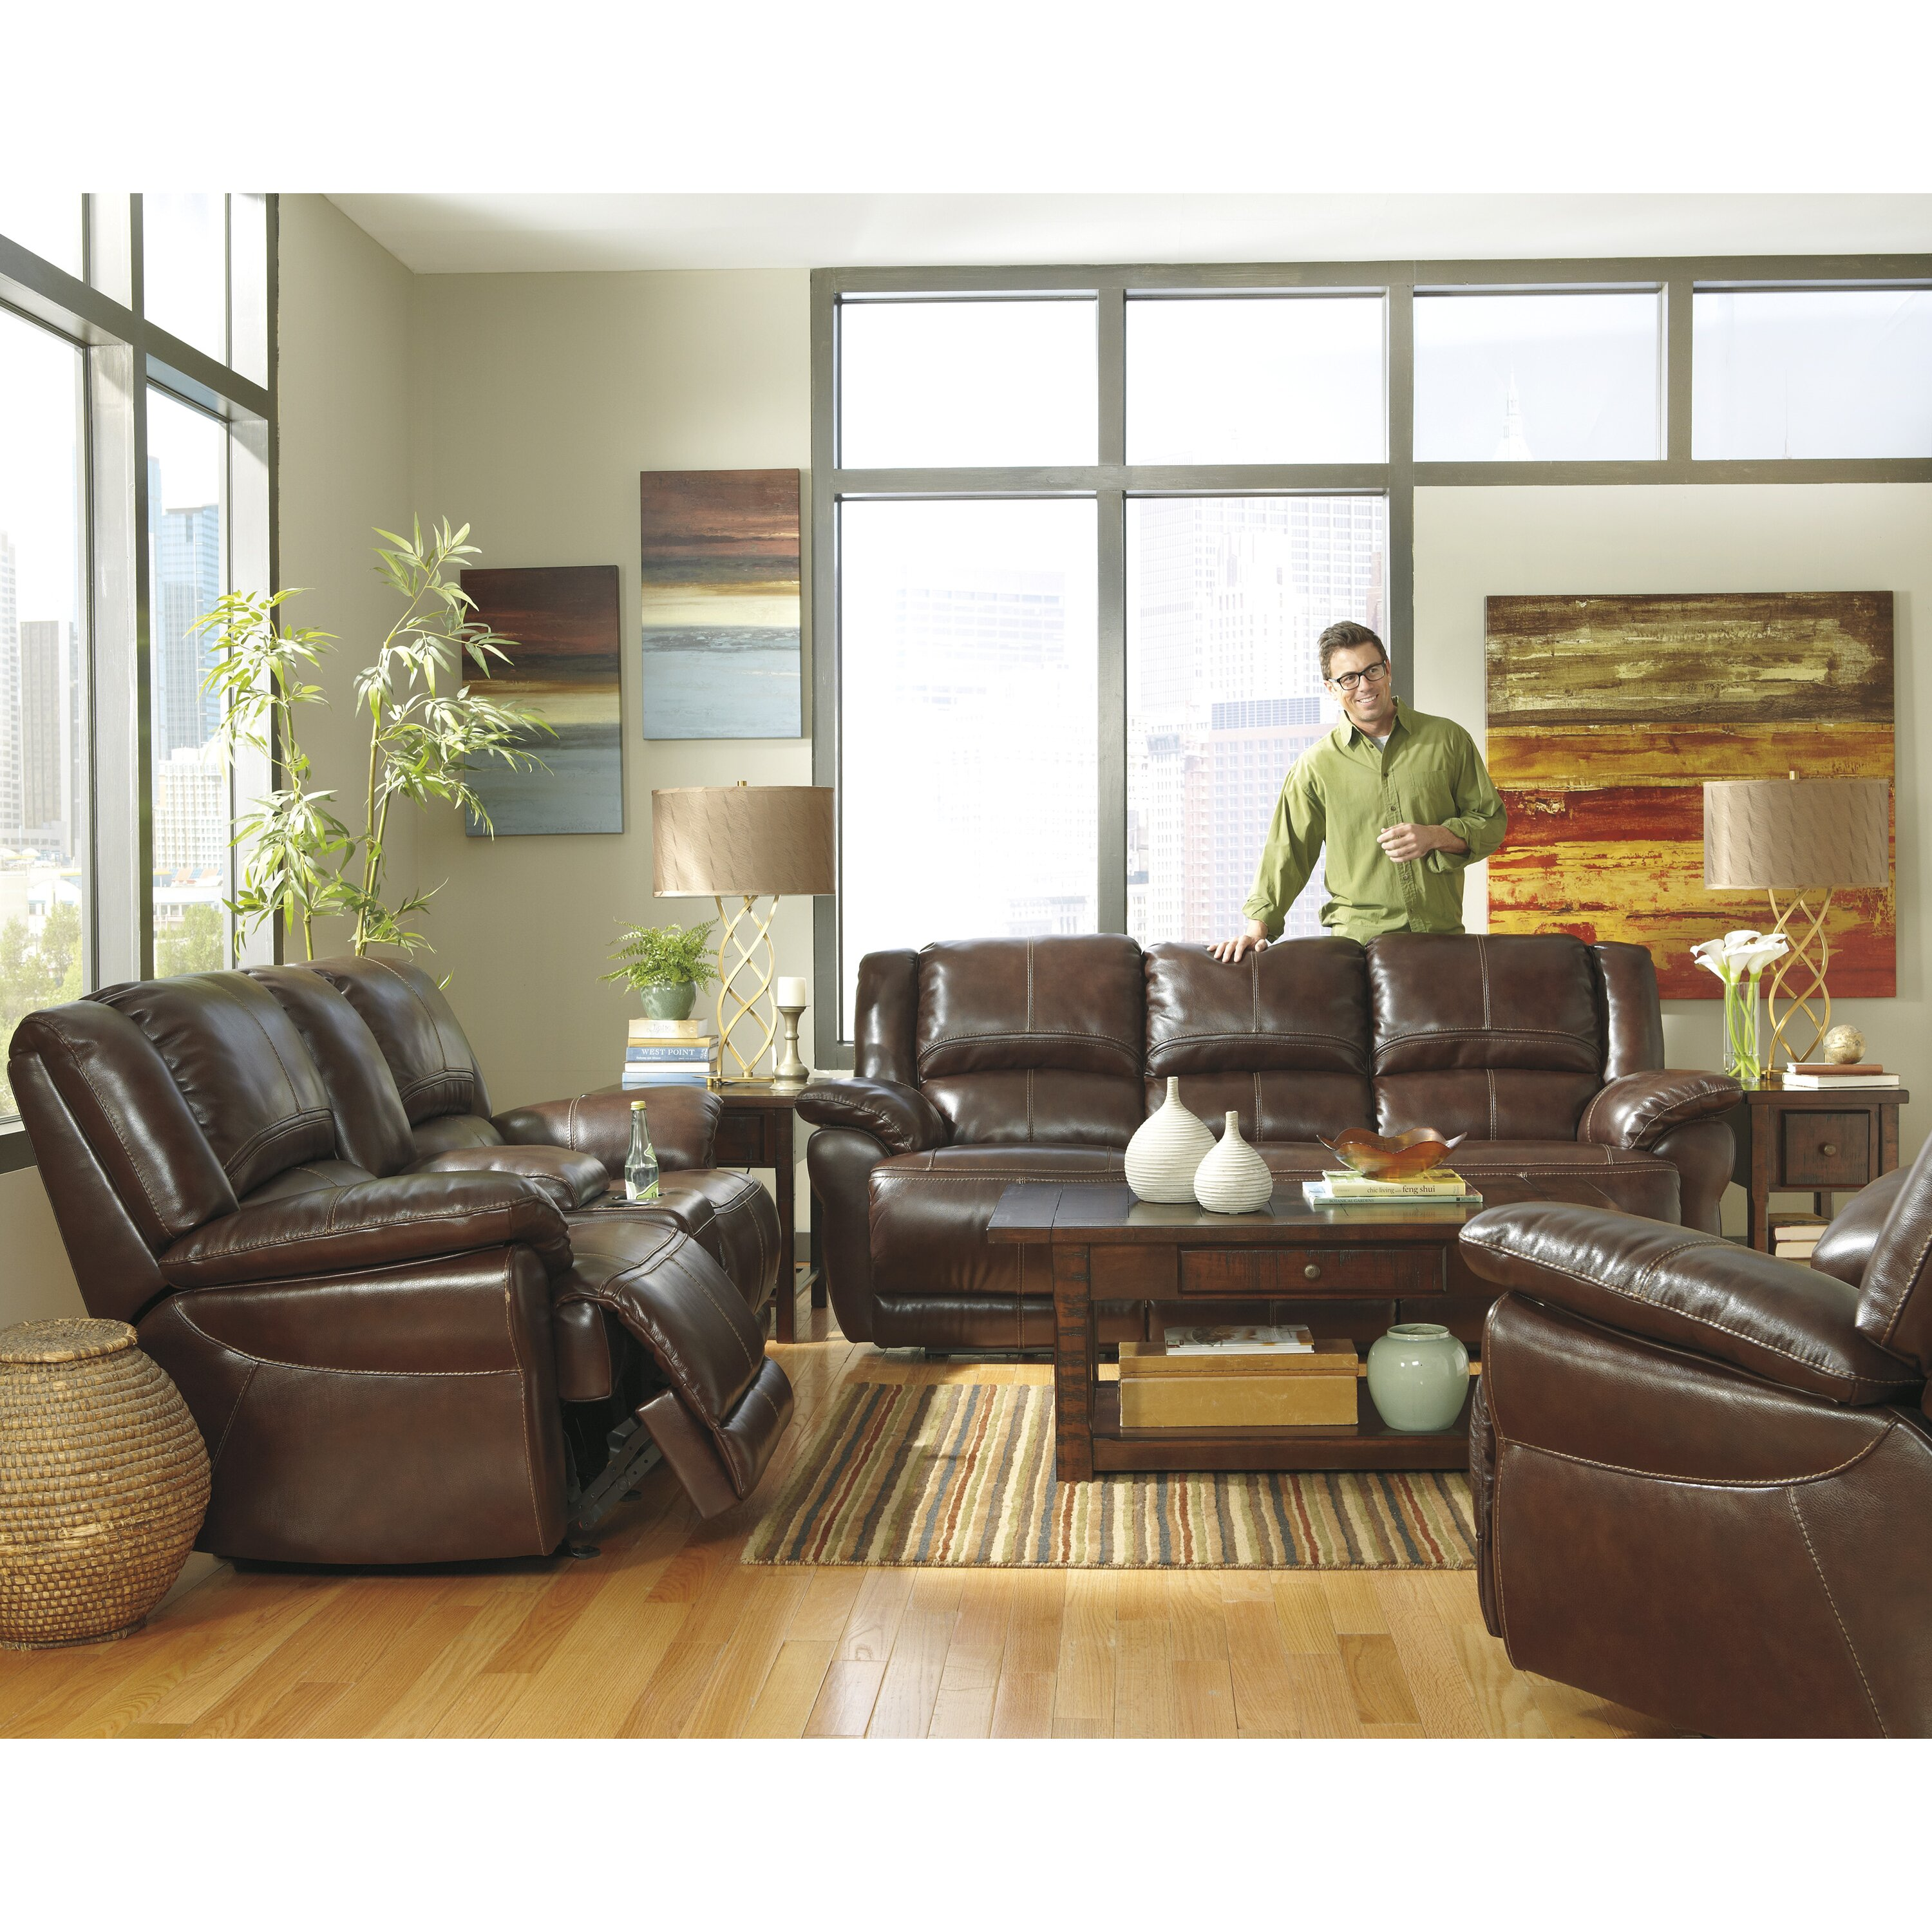 Ashley Signature Collection: Signature Design By Ashley Mahoney Living Room Collection